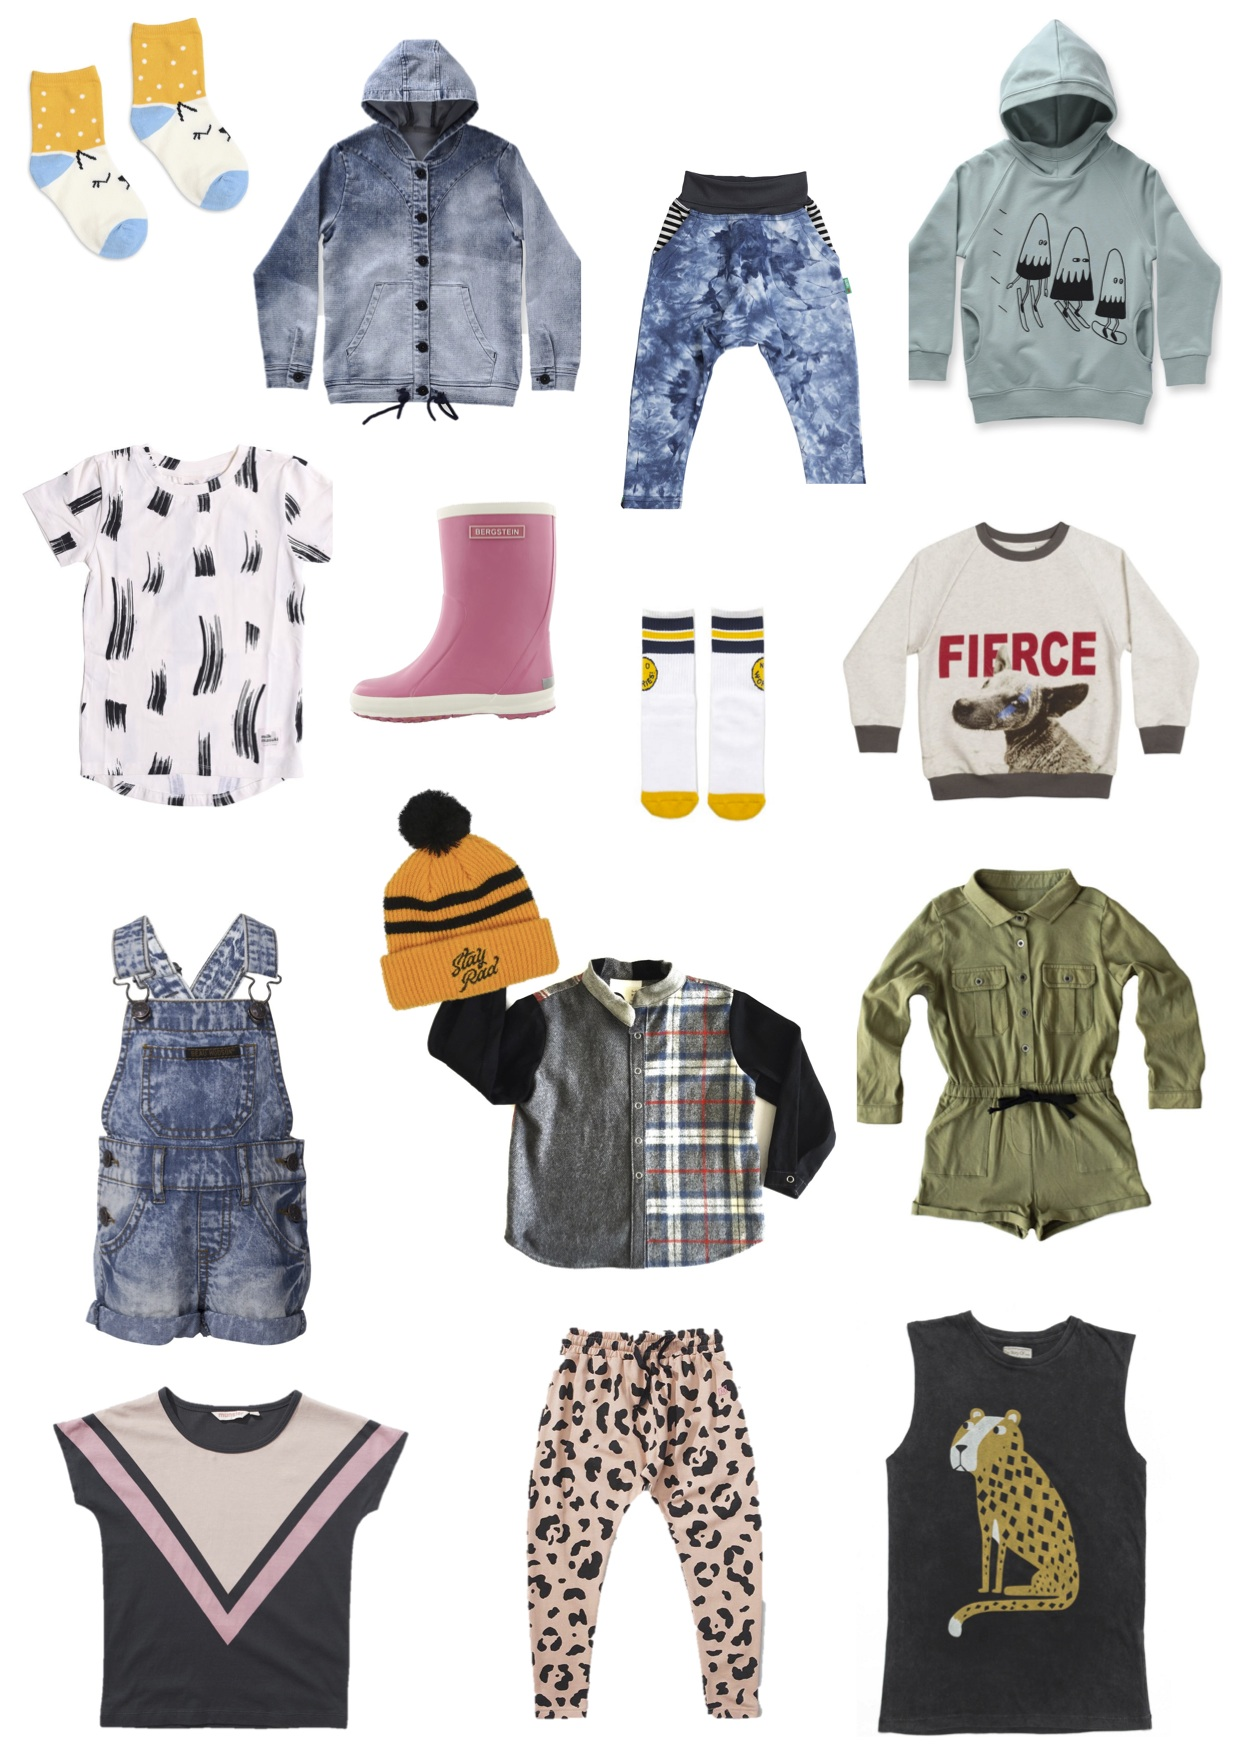 15 Rad Kids Clothing Items From Aussie Brands